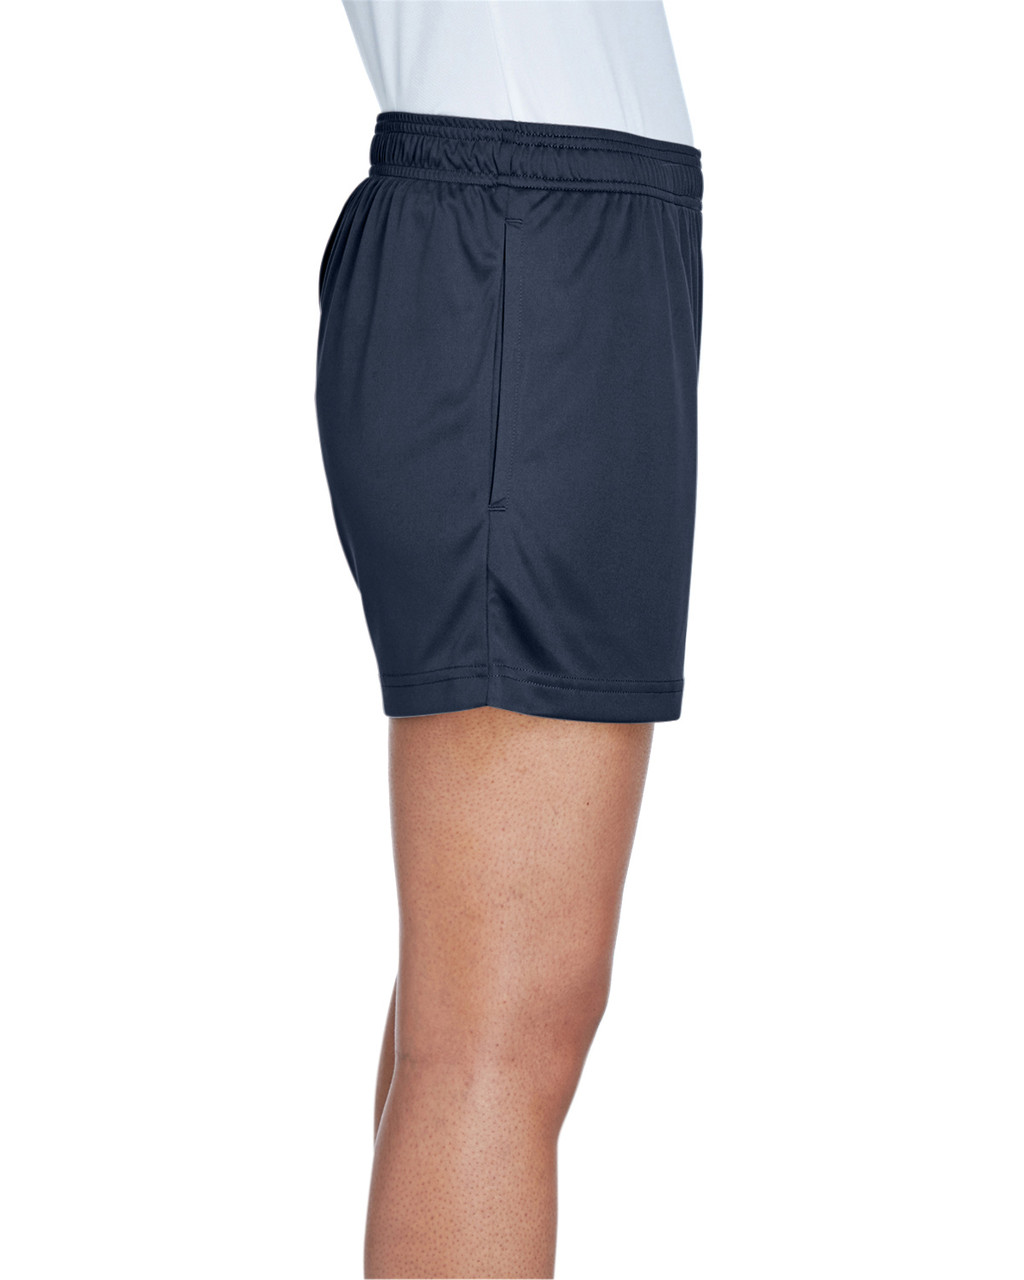 Sport Dark Navy - Side, TT11SHW Team 365 Ladies' Zone Performance Short | T-shirt.ca